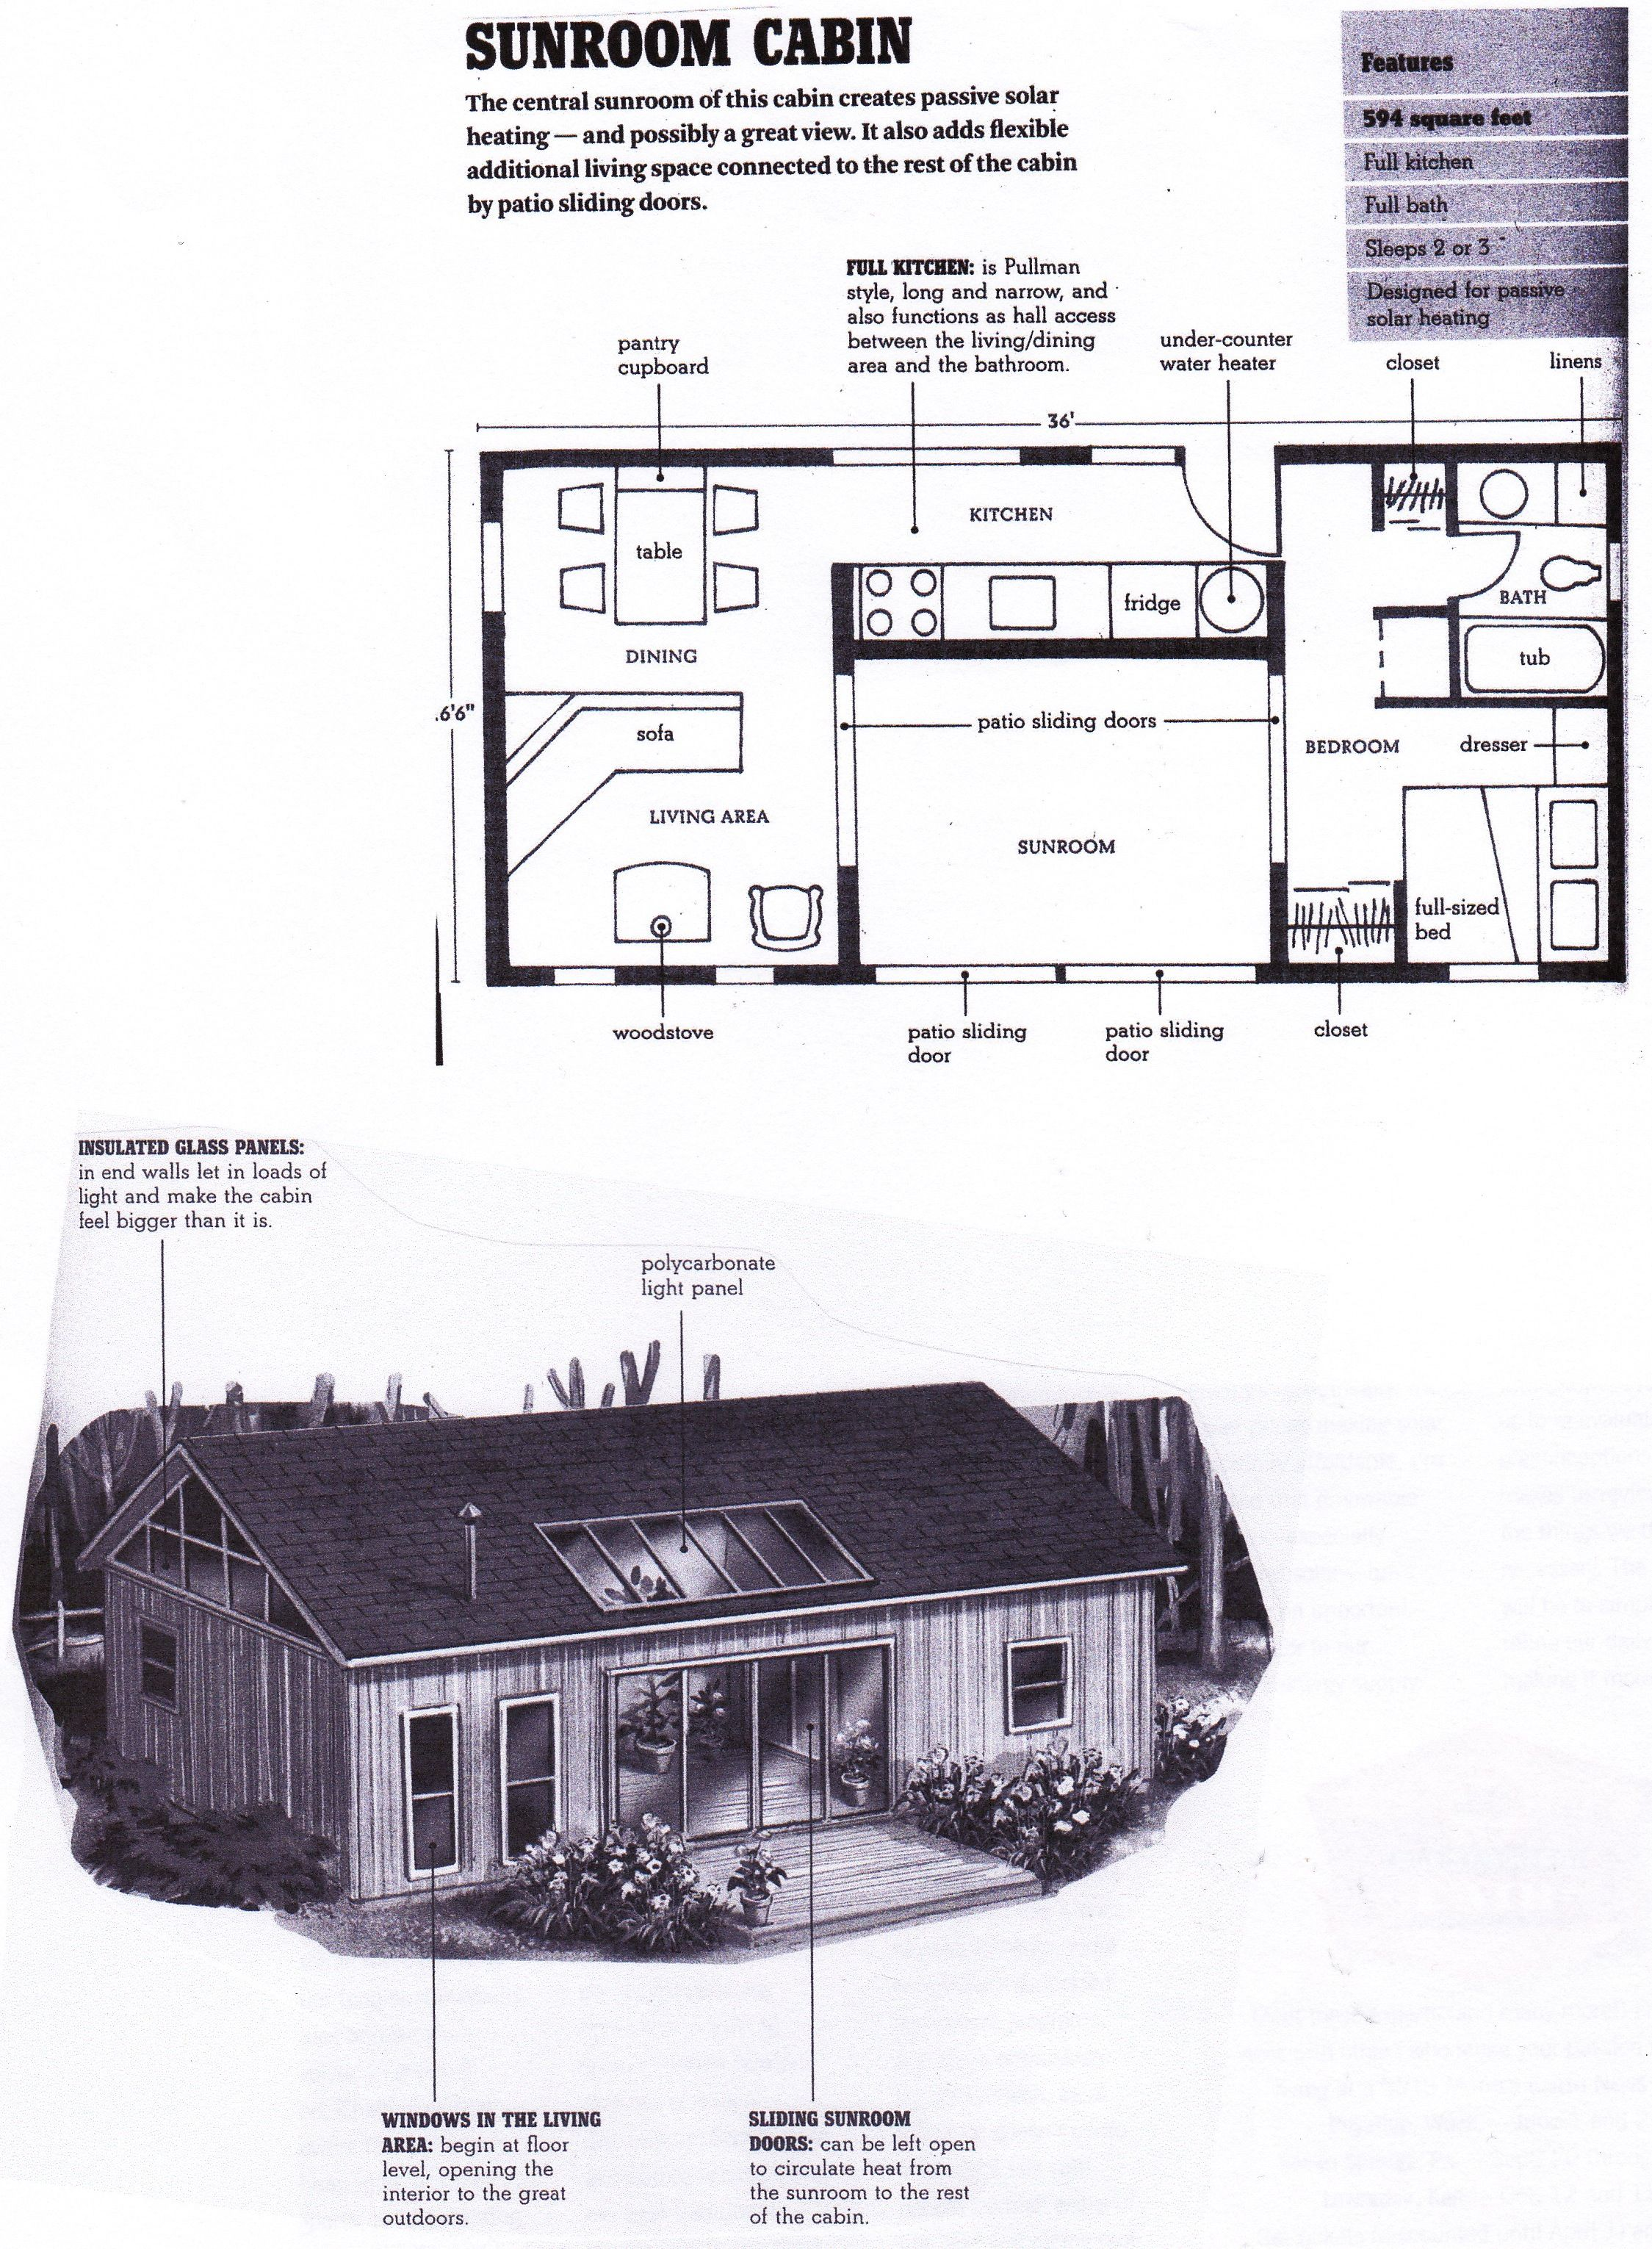 Sunroom Cabin Floorplan From Compact Cabins Simple Living In 1000 Square Feet Or Less By Gerald Rowan Container House Floor Plans House Plans